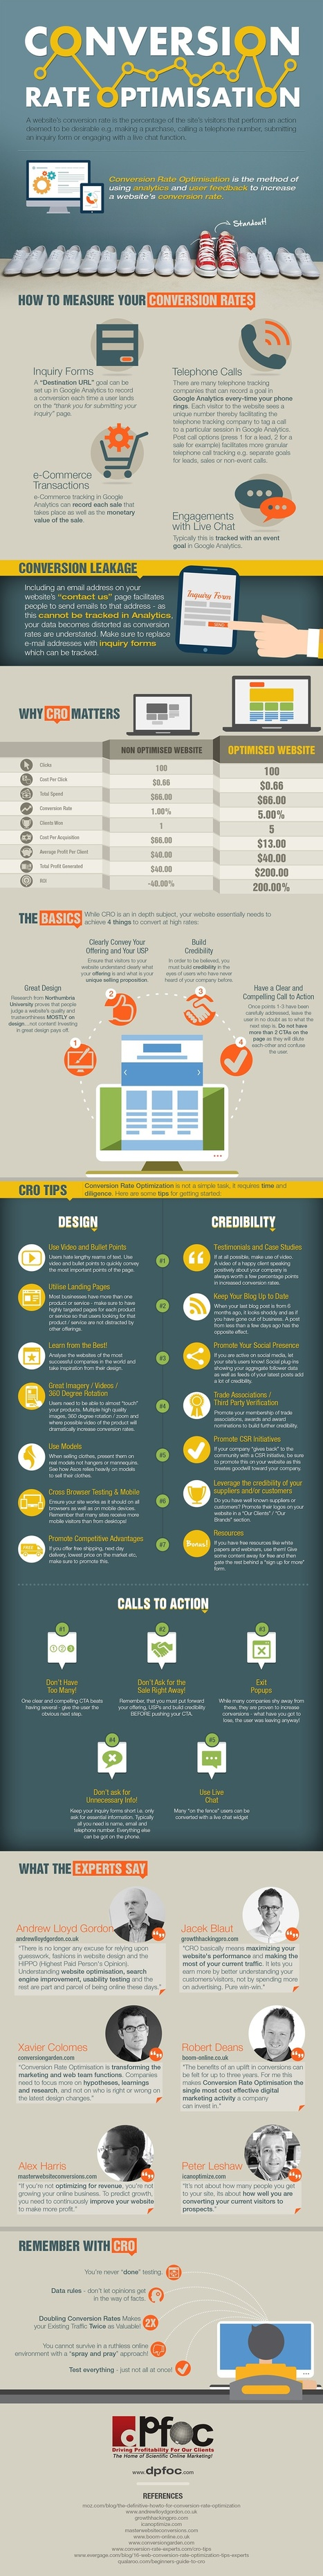 The Best Tips For Using Your Website To Convert Customers [Infographic]   MarketingHits   Scoop.it